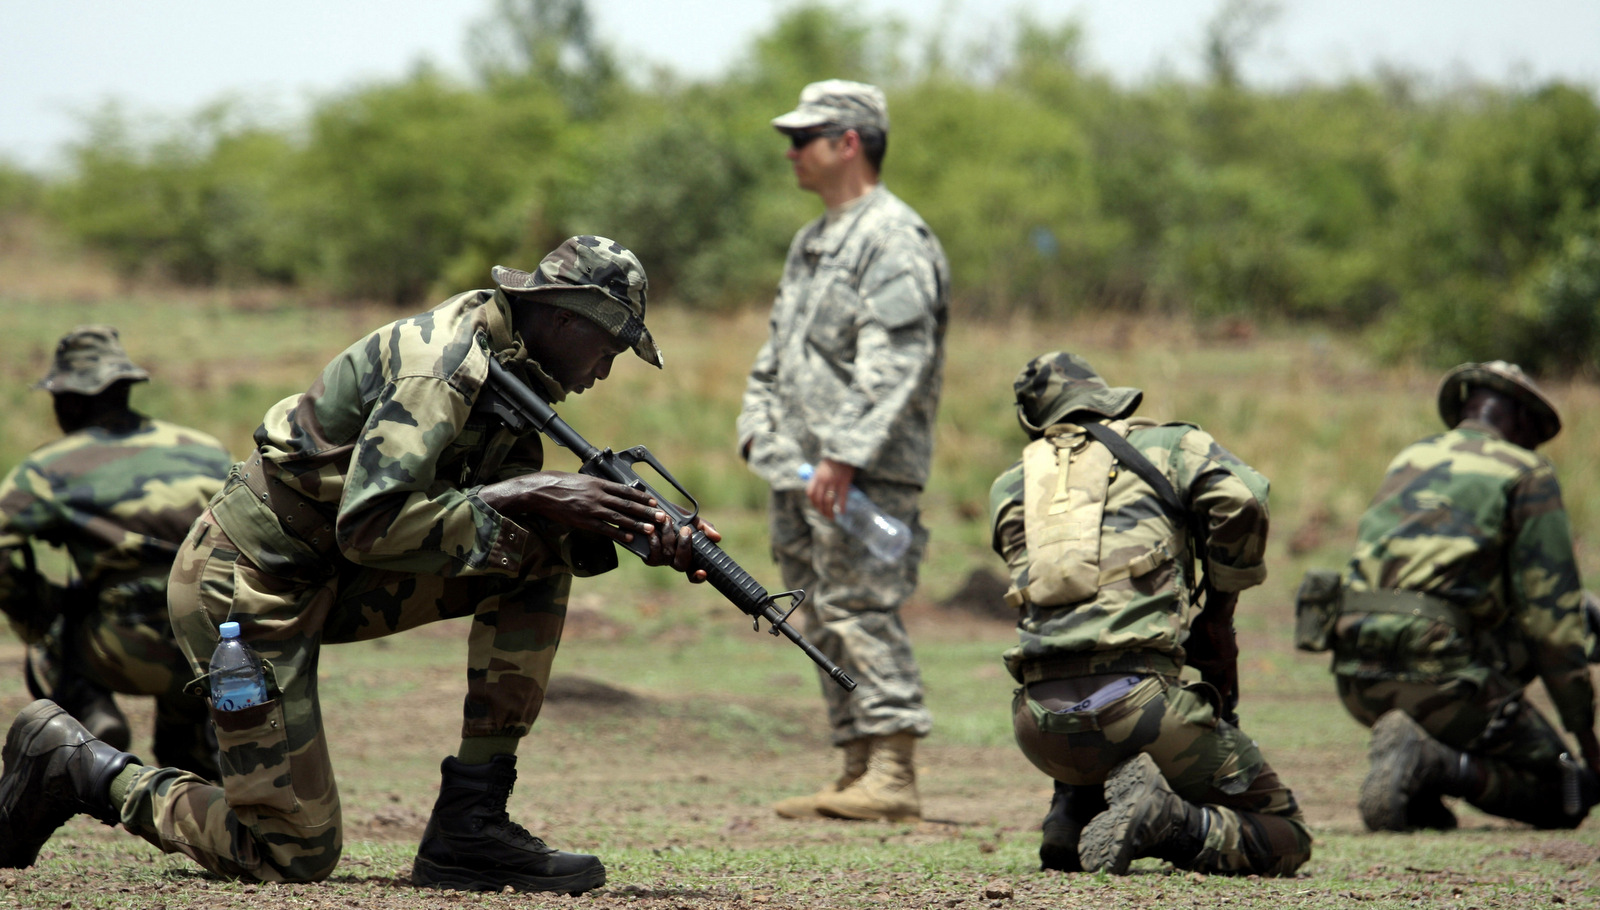 America's Drug Wars in Africa: Missing Money, and a Phantom $500 Million